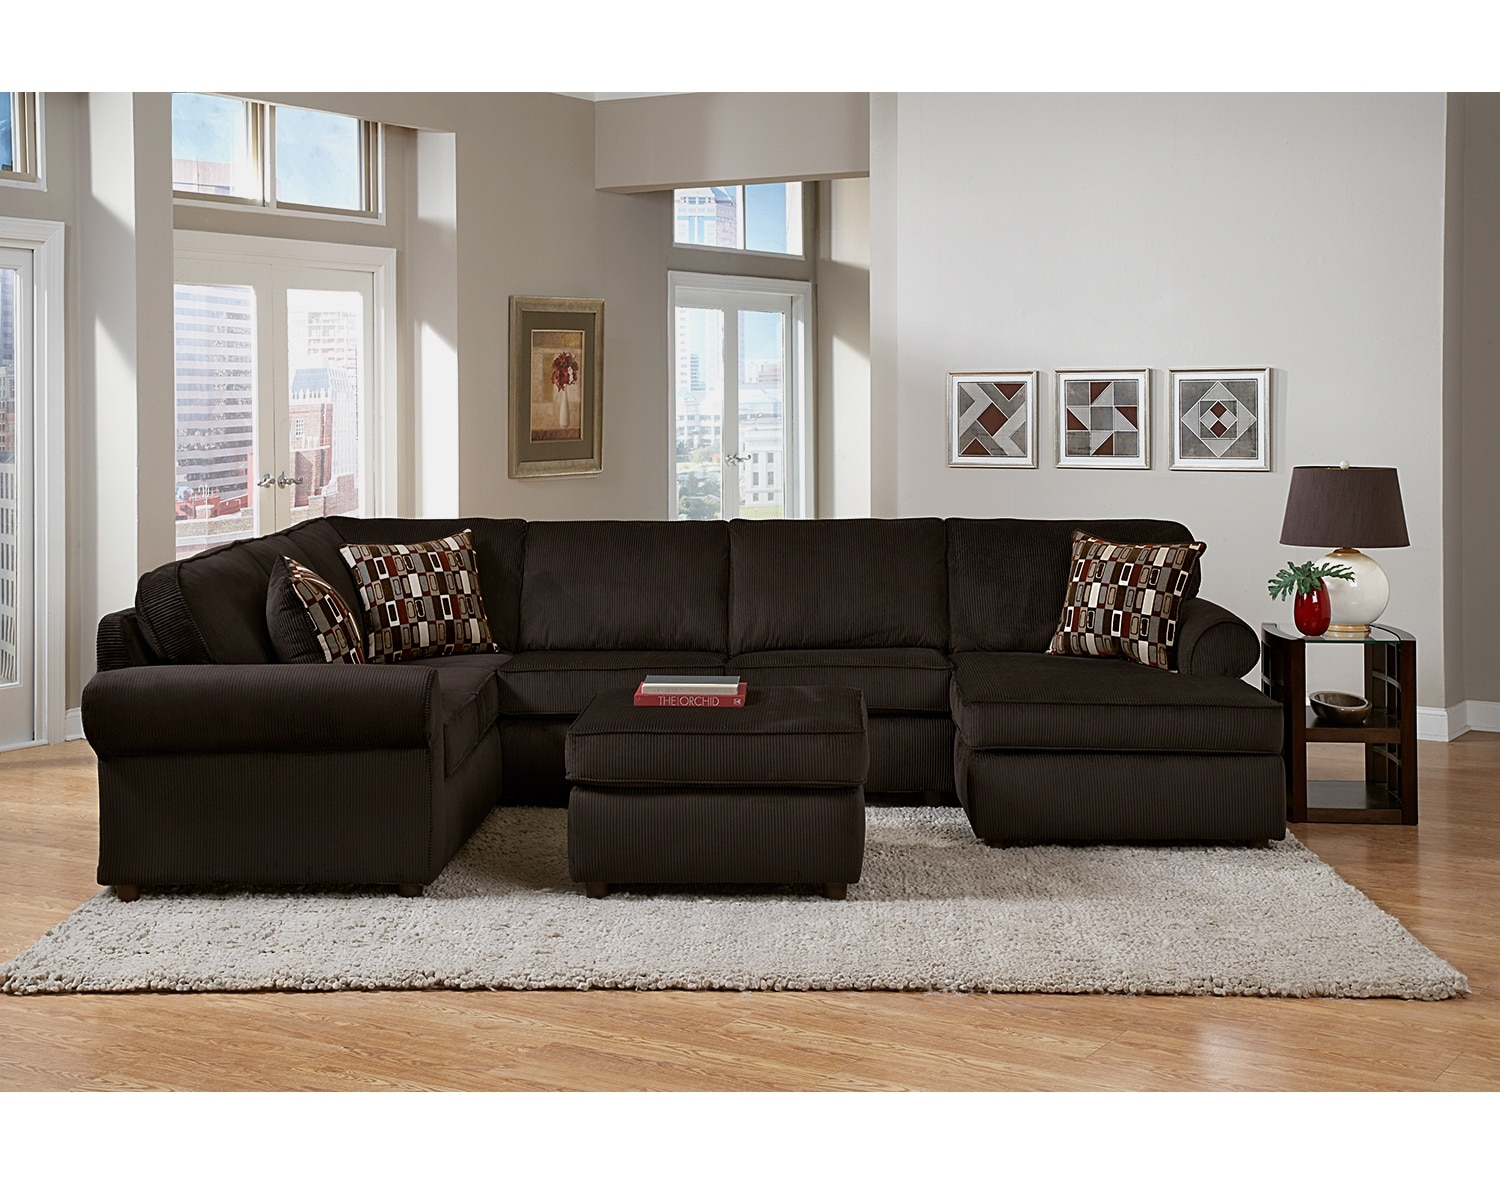 The Monarch Sectional Collection - Chocolate